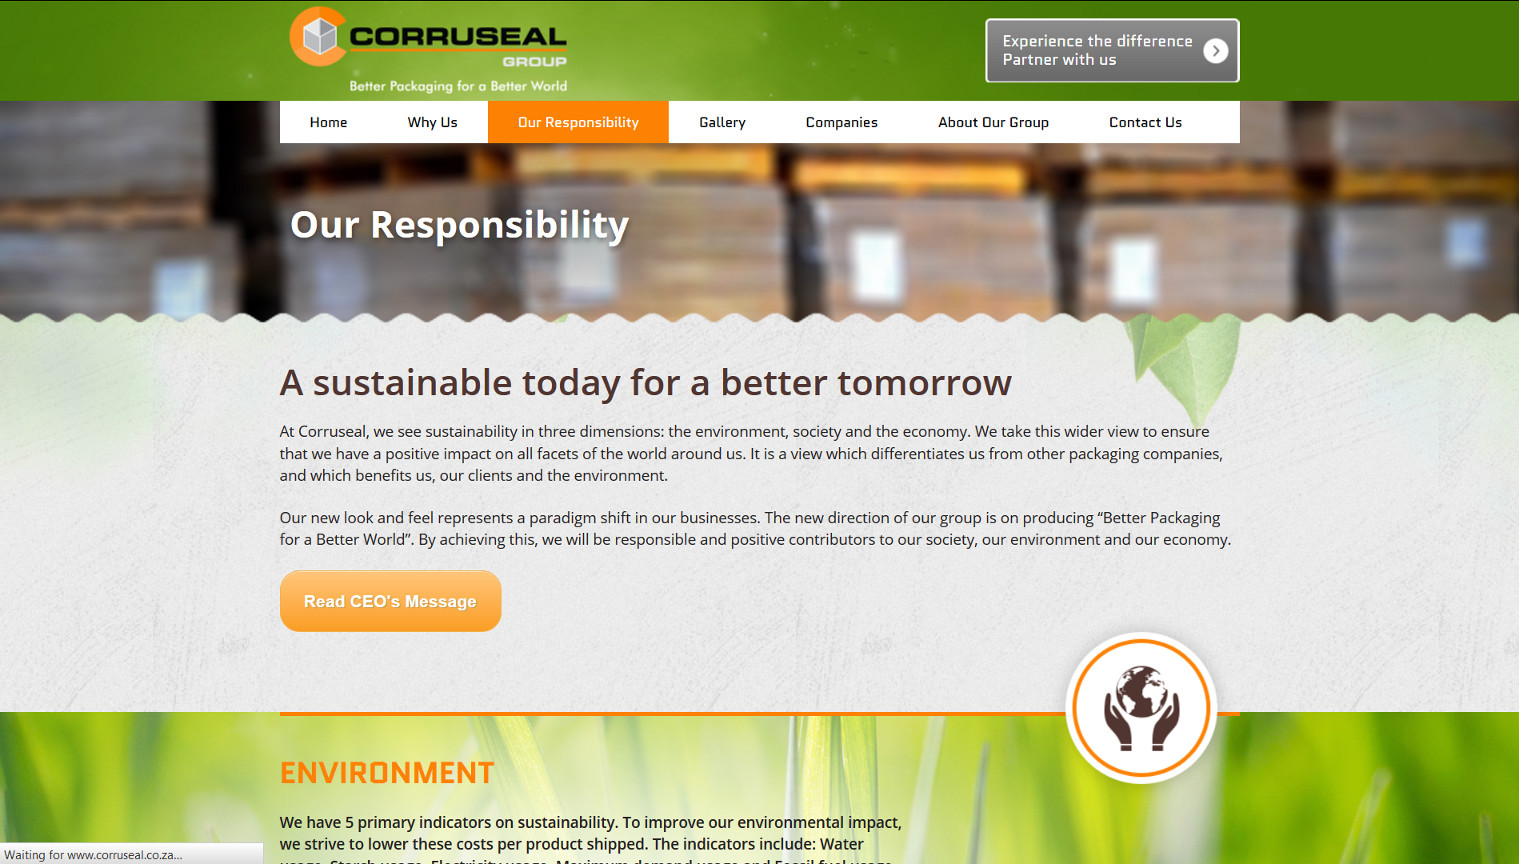 Corruseal Group - Our Responsibility Page